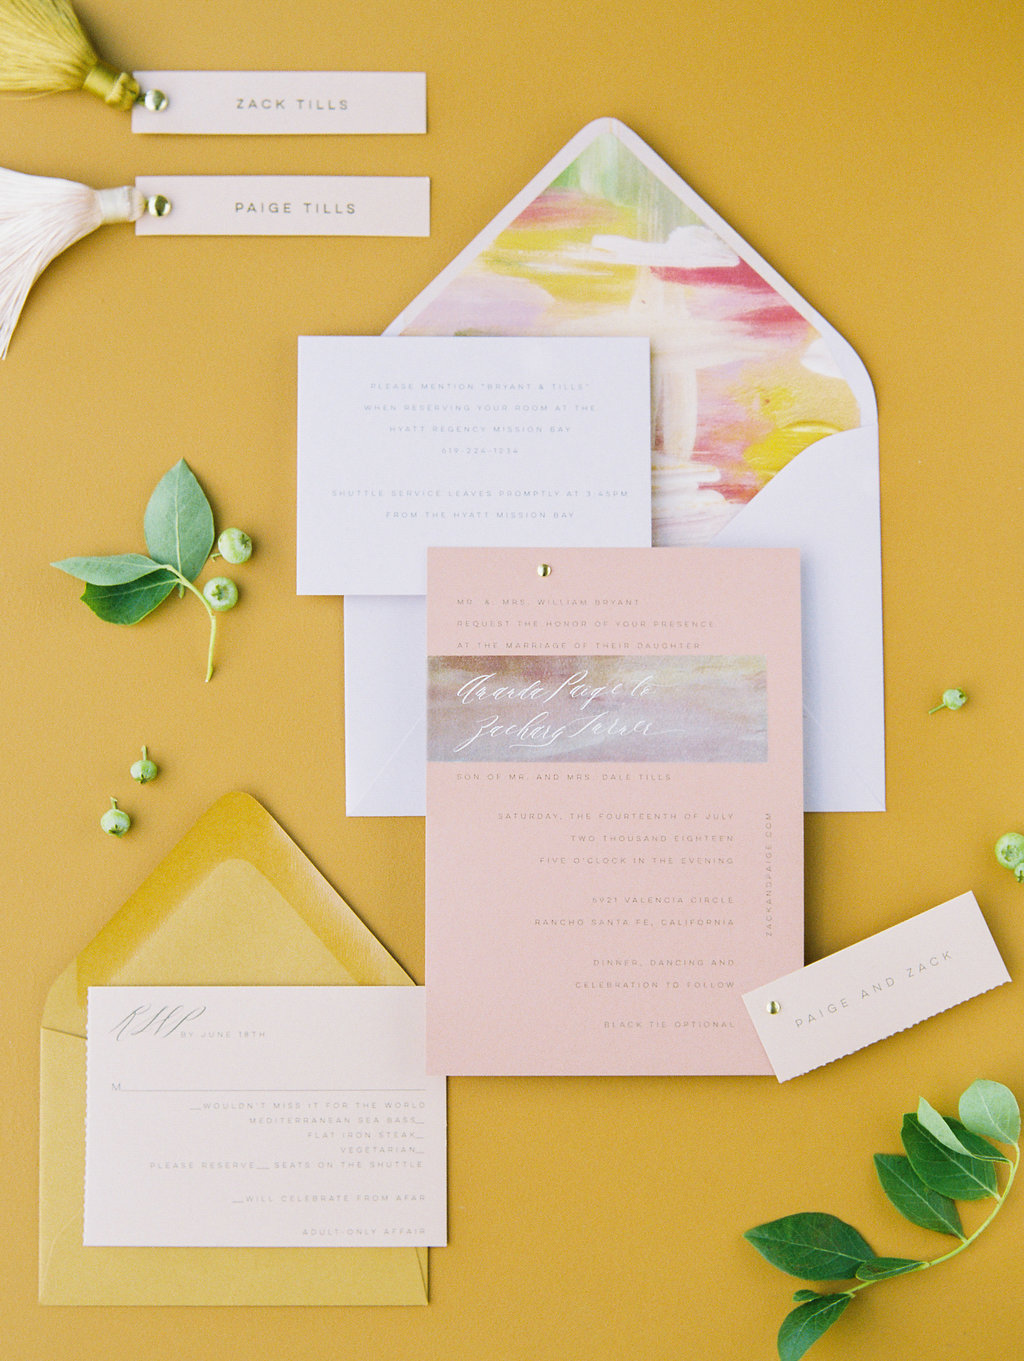 paige zack wedding pink and yellow invites